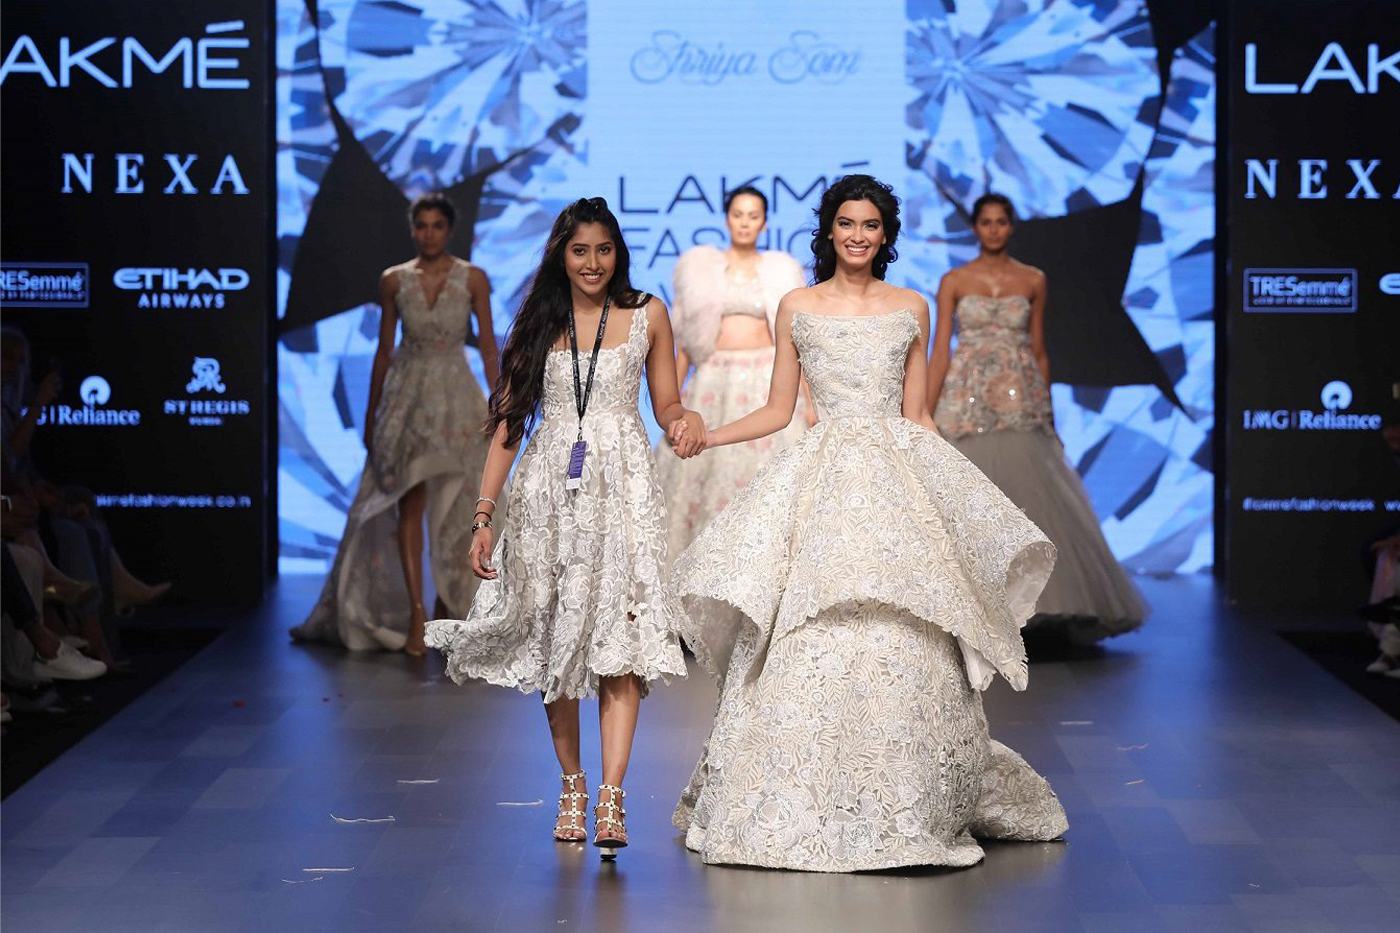 Lakme Fashion Week 2020 Begins – The first digital version